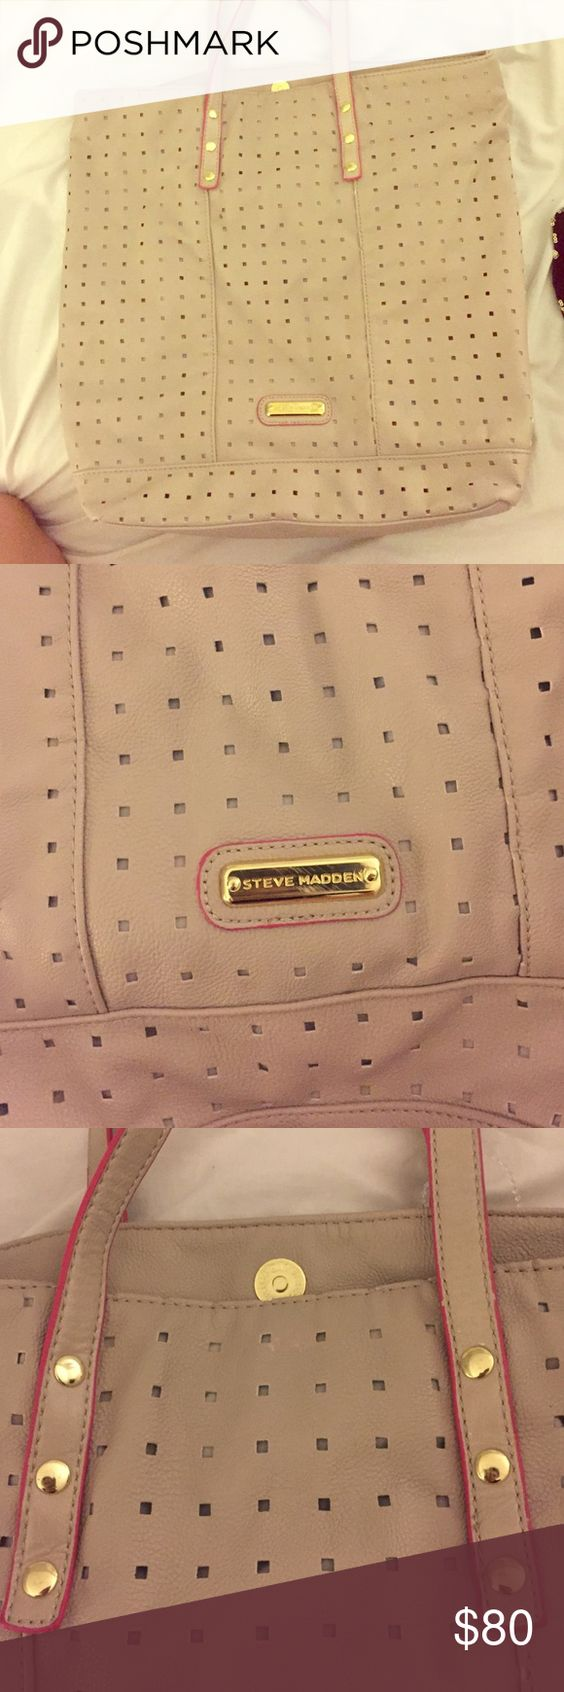 Steve Madden Purse💗 Sand Beige Color, Pink with gold handles, small square holes all over purse Steve Madden Bags Shoulder Bags